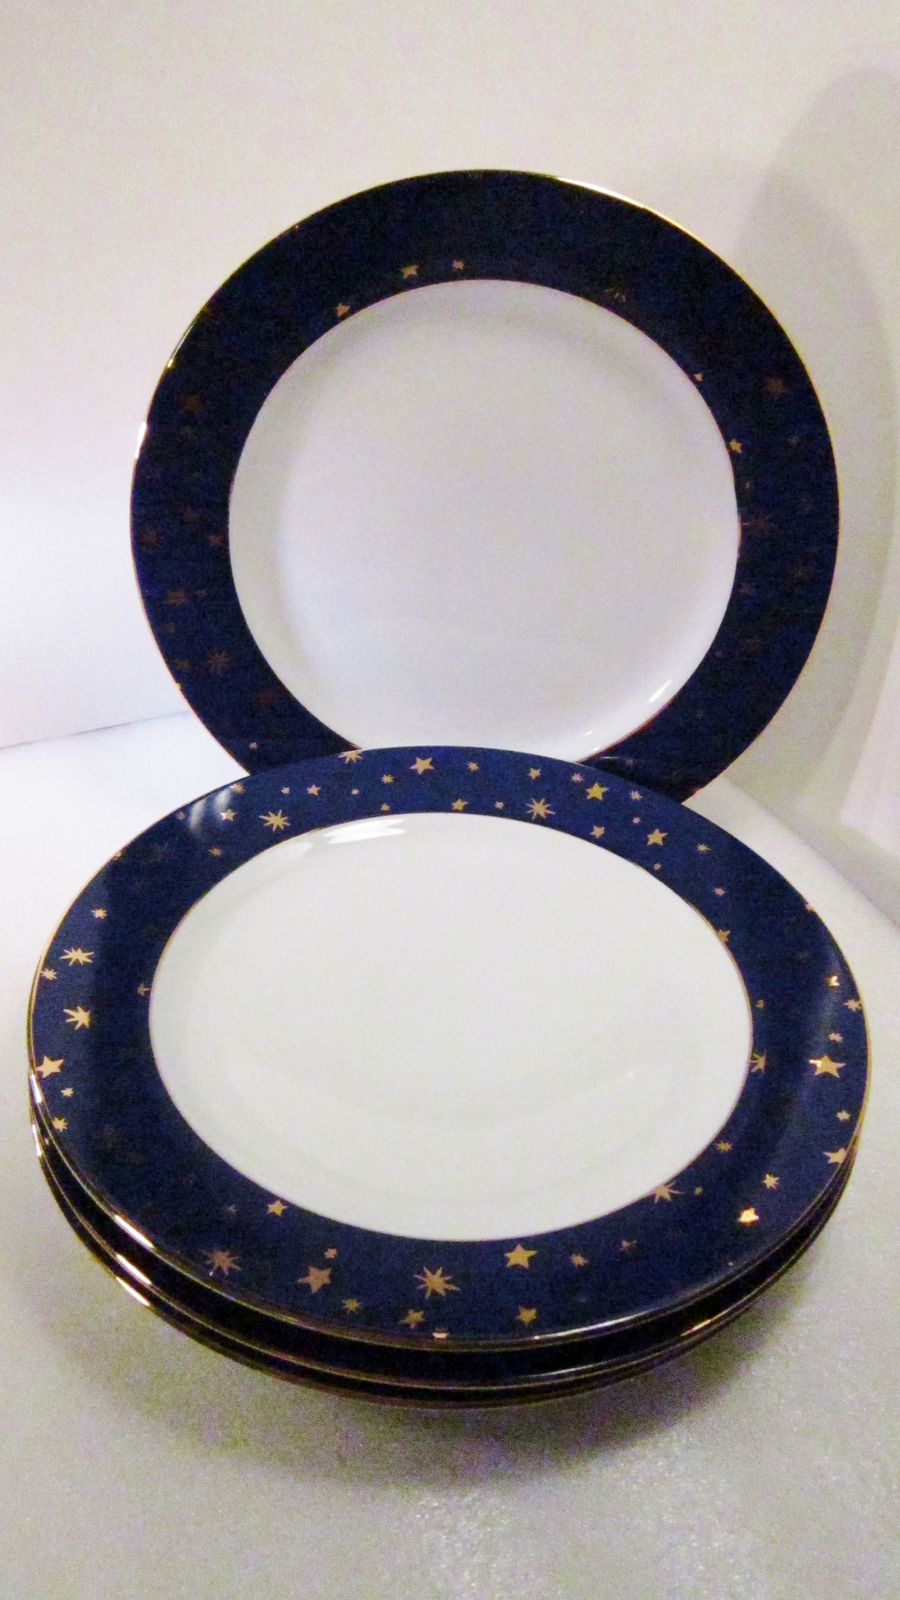 Sakura Galaxy Porcelain 4 Dinner Plates Gold and Blue & Sakura Galaxy Porcelain 4 Dinner Plates Gold and 10 similar items